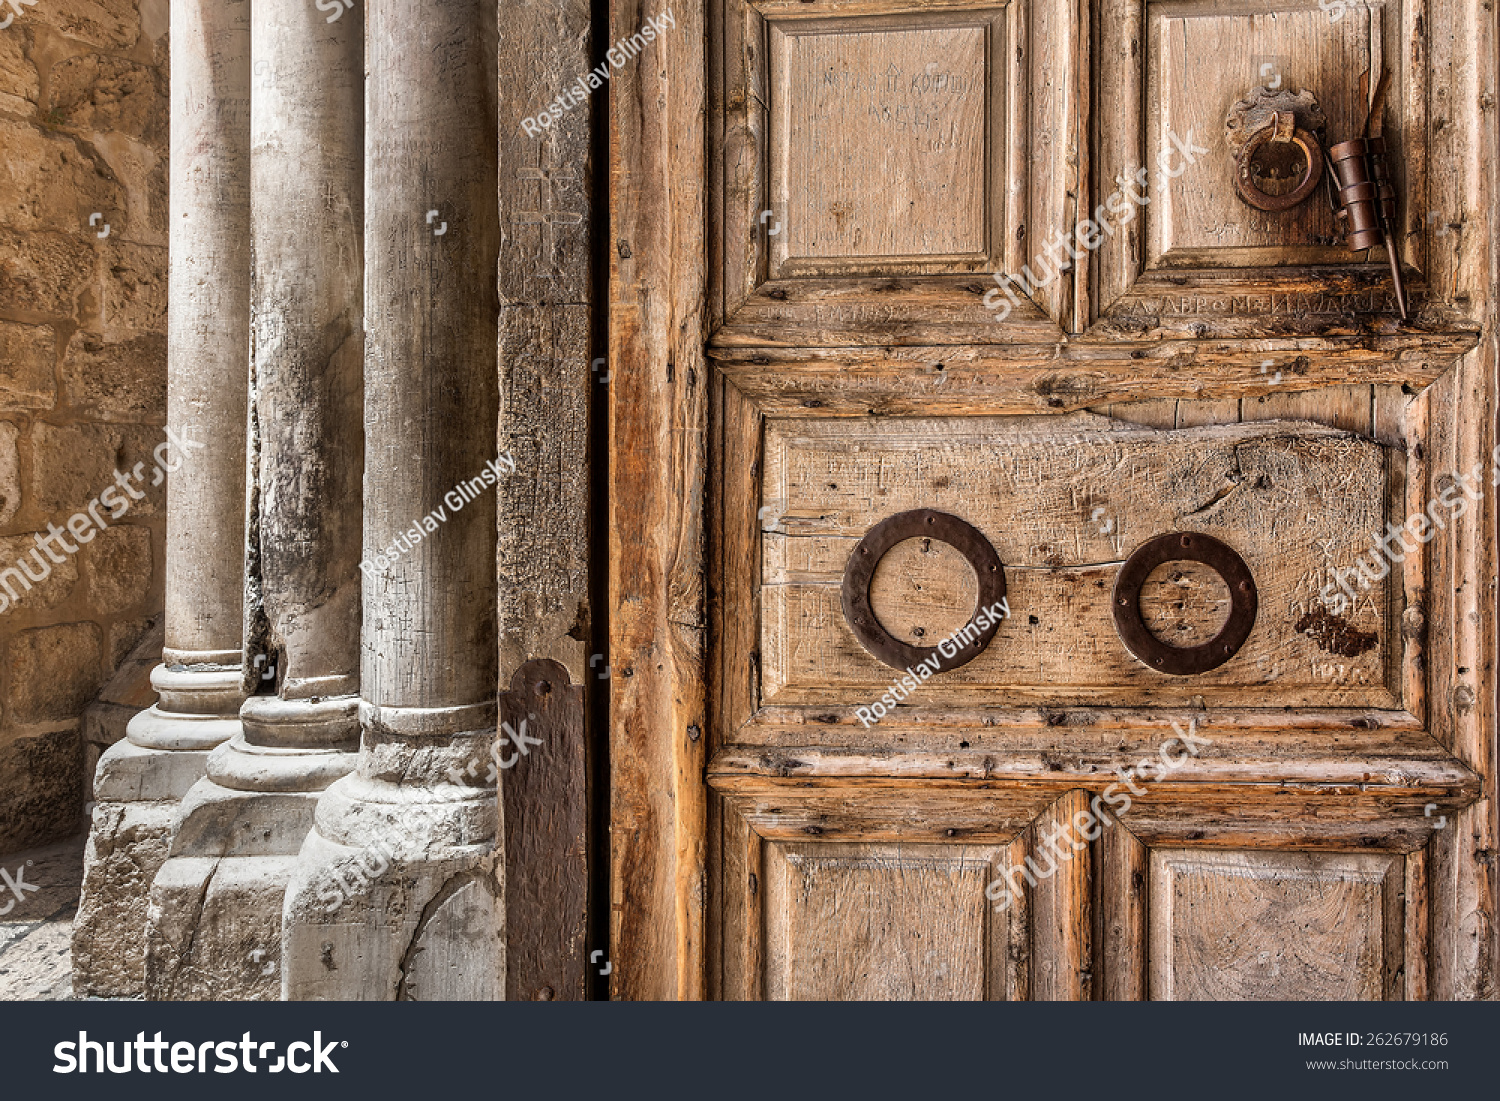 Ancient Wooden Door Marble Pillars Entrance Stock Photo